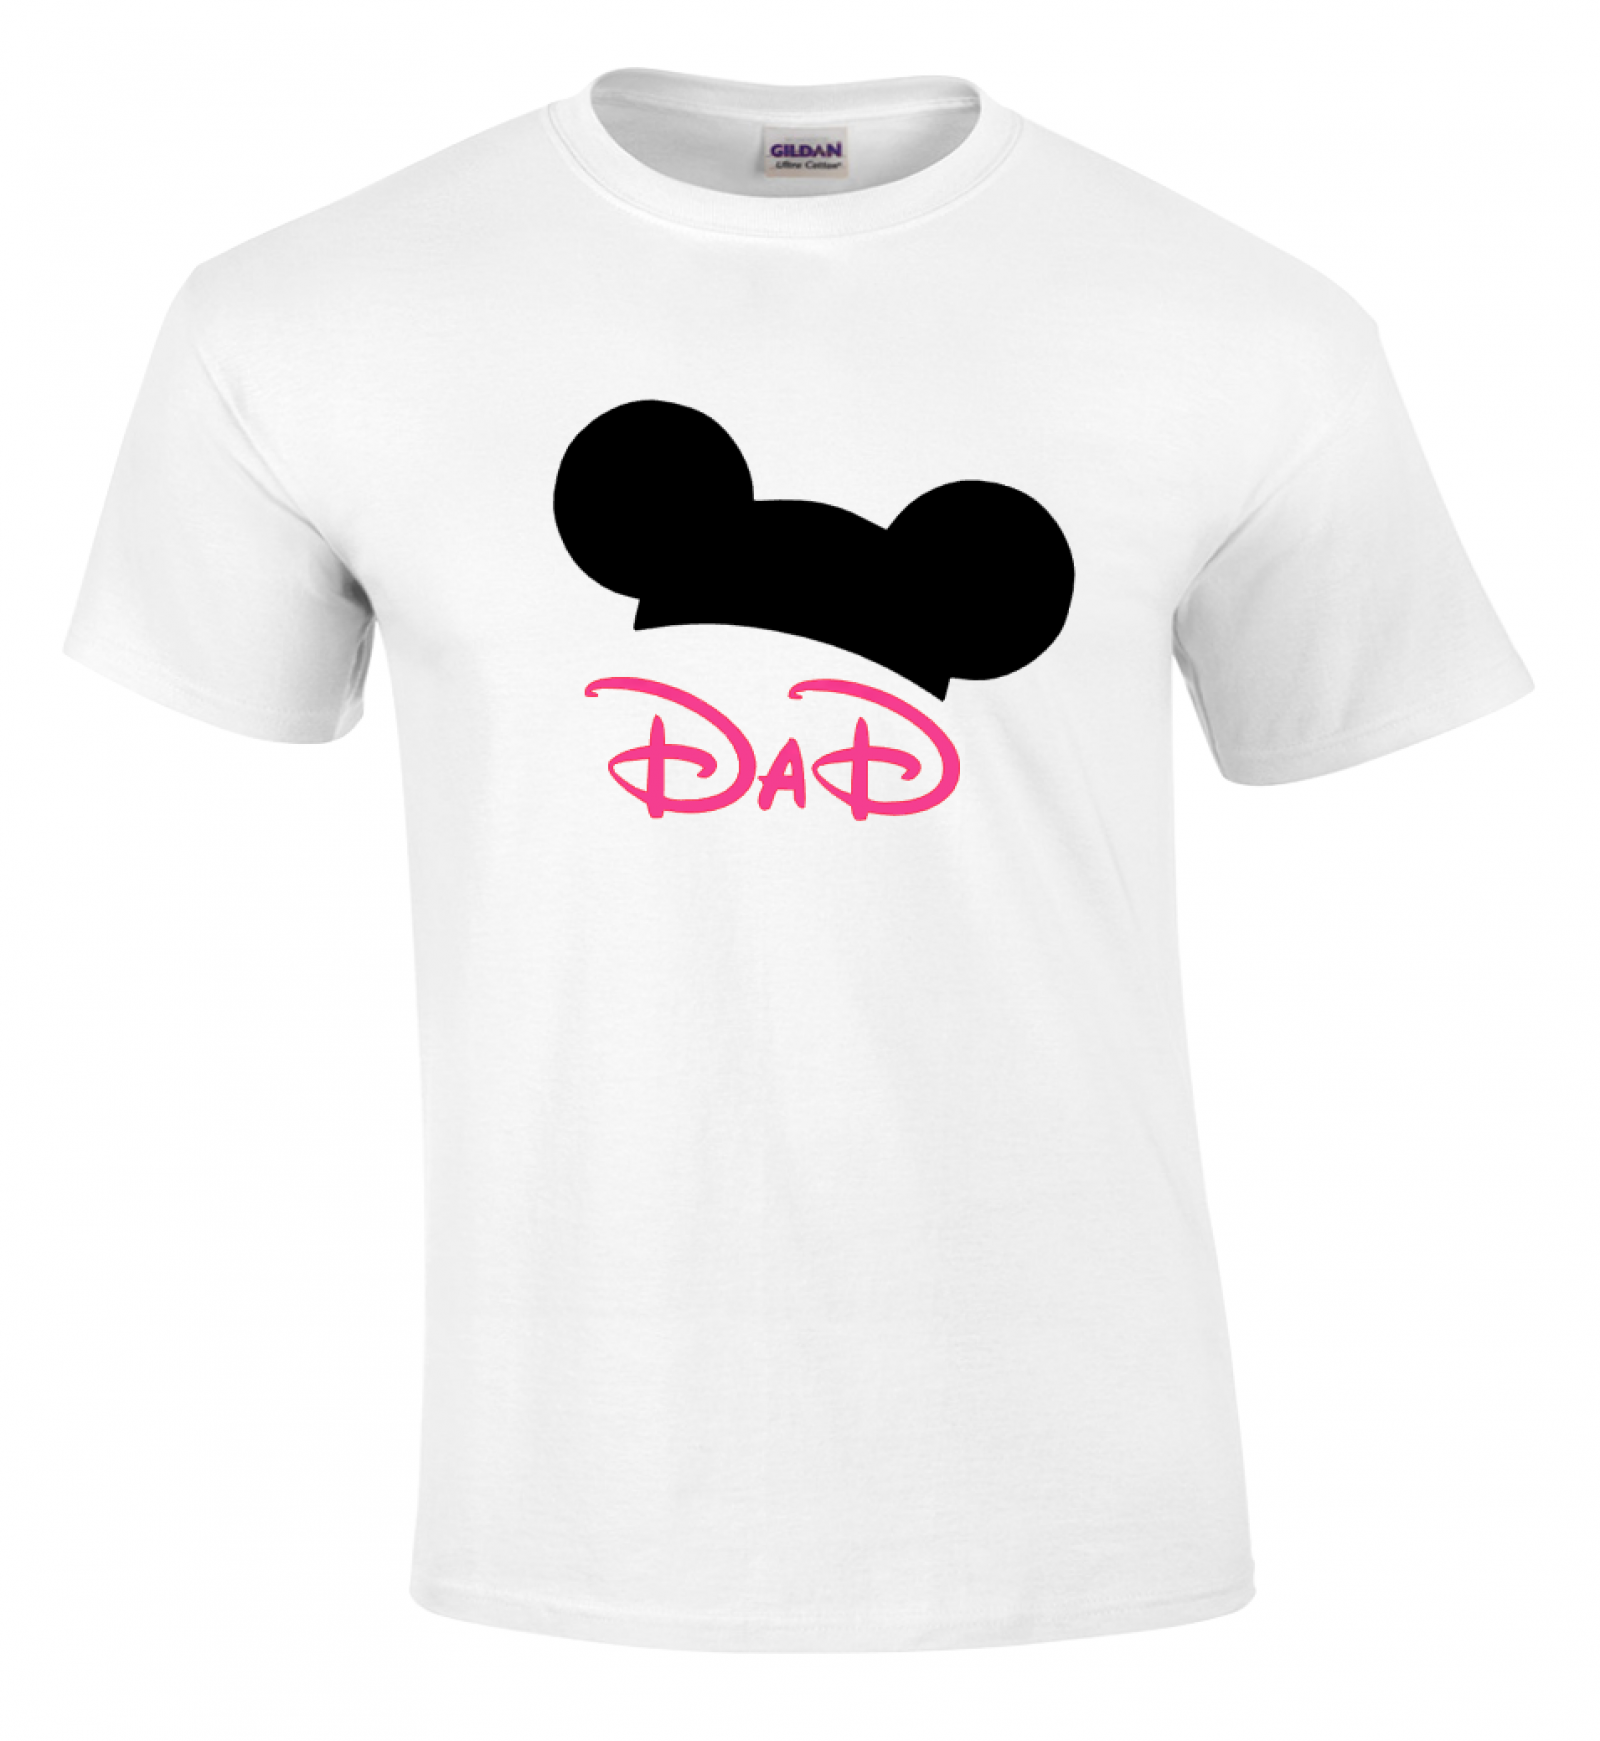 disney birthday girl family vacation t shirts the official site of logan to layla. Black Bedroom Furniture Sets. Home Design Ideas